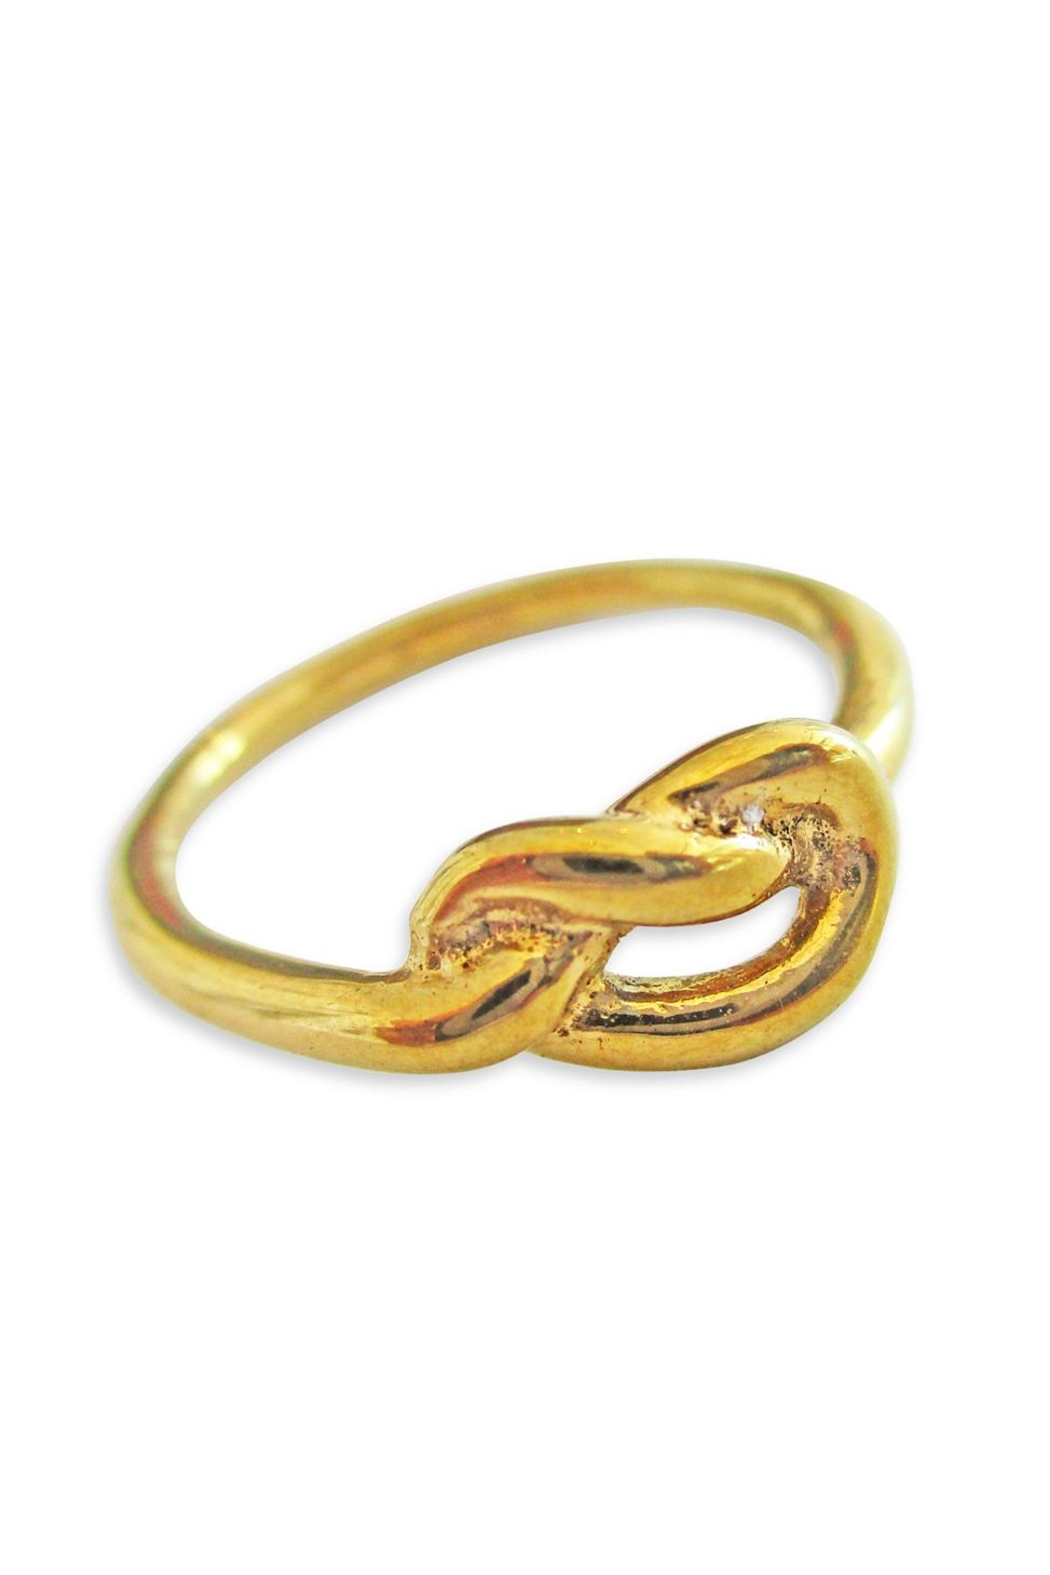 Malia Jewelry Love-Knot Goldplated Ring - Main Image